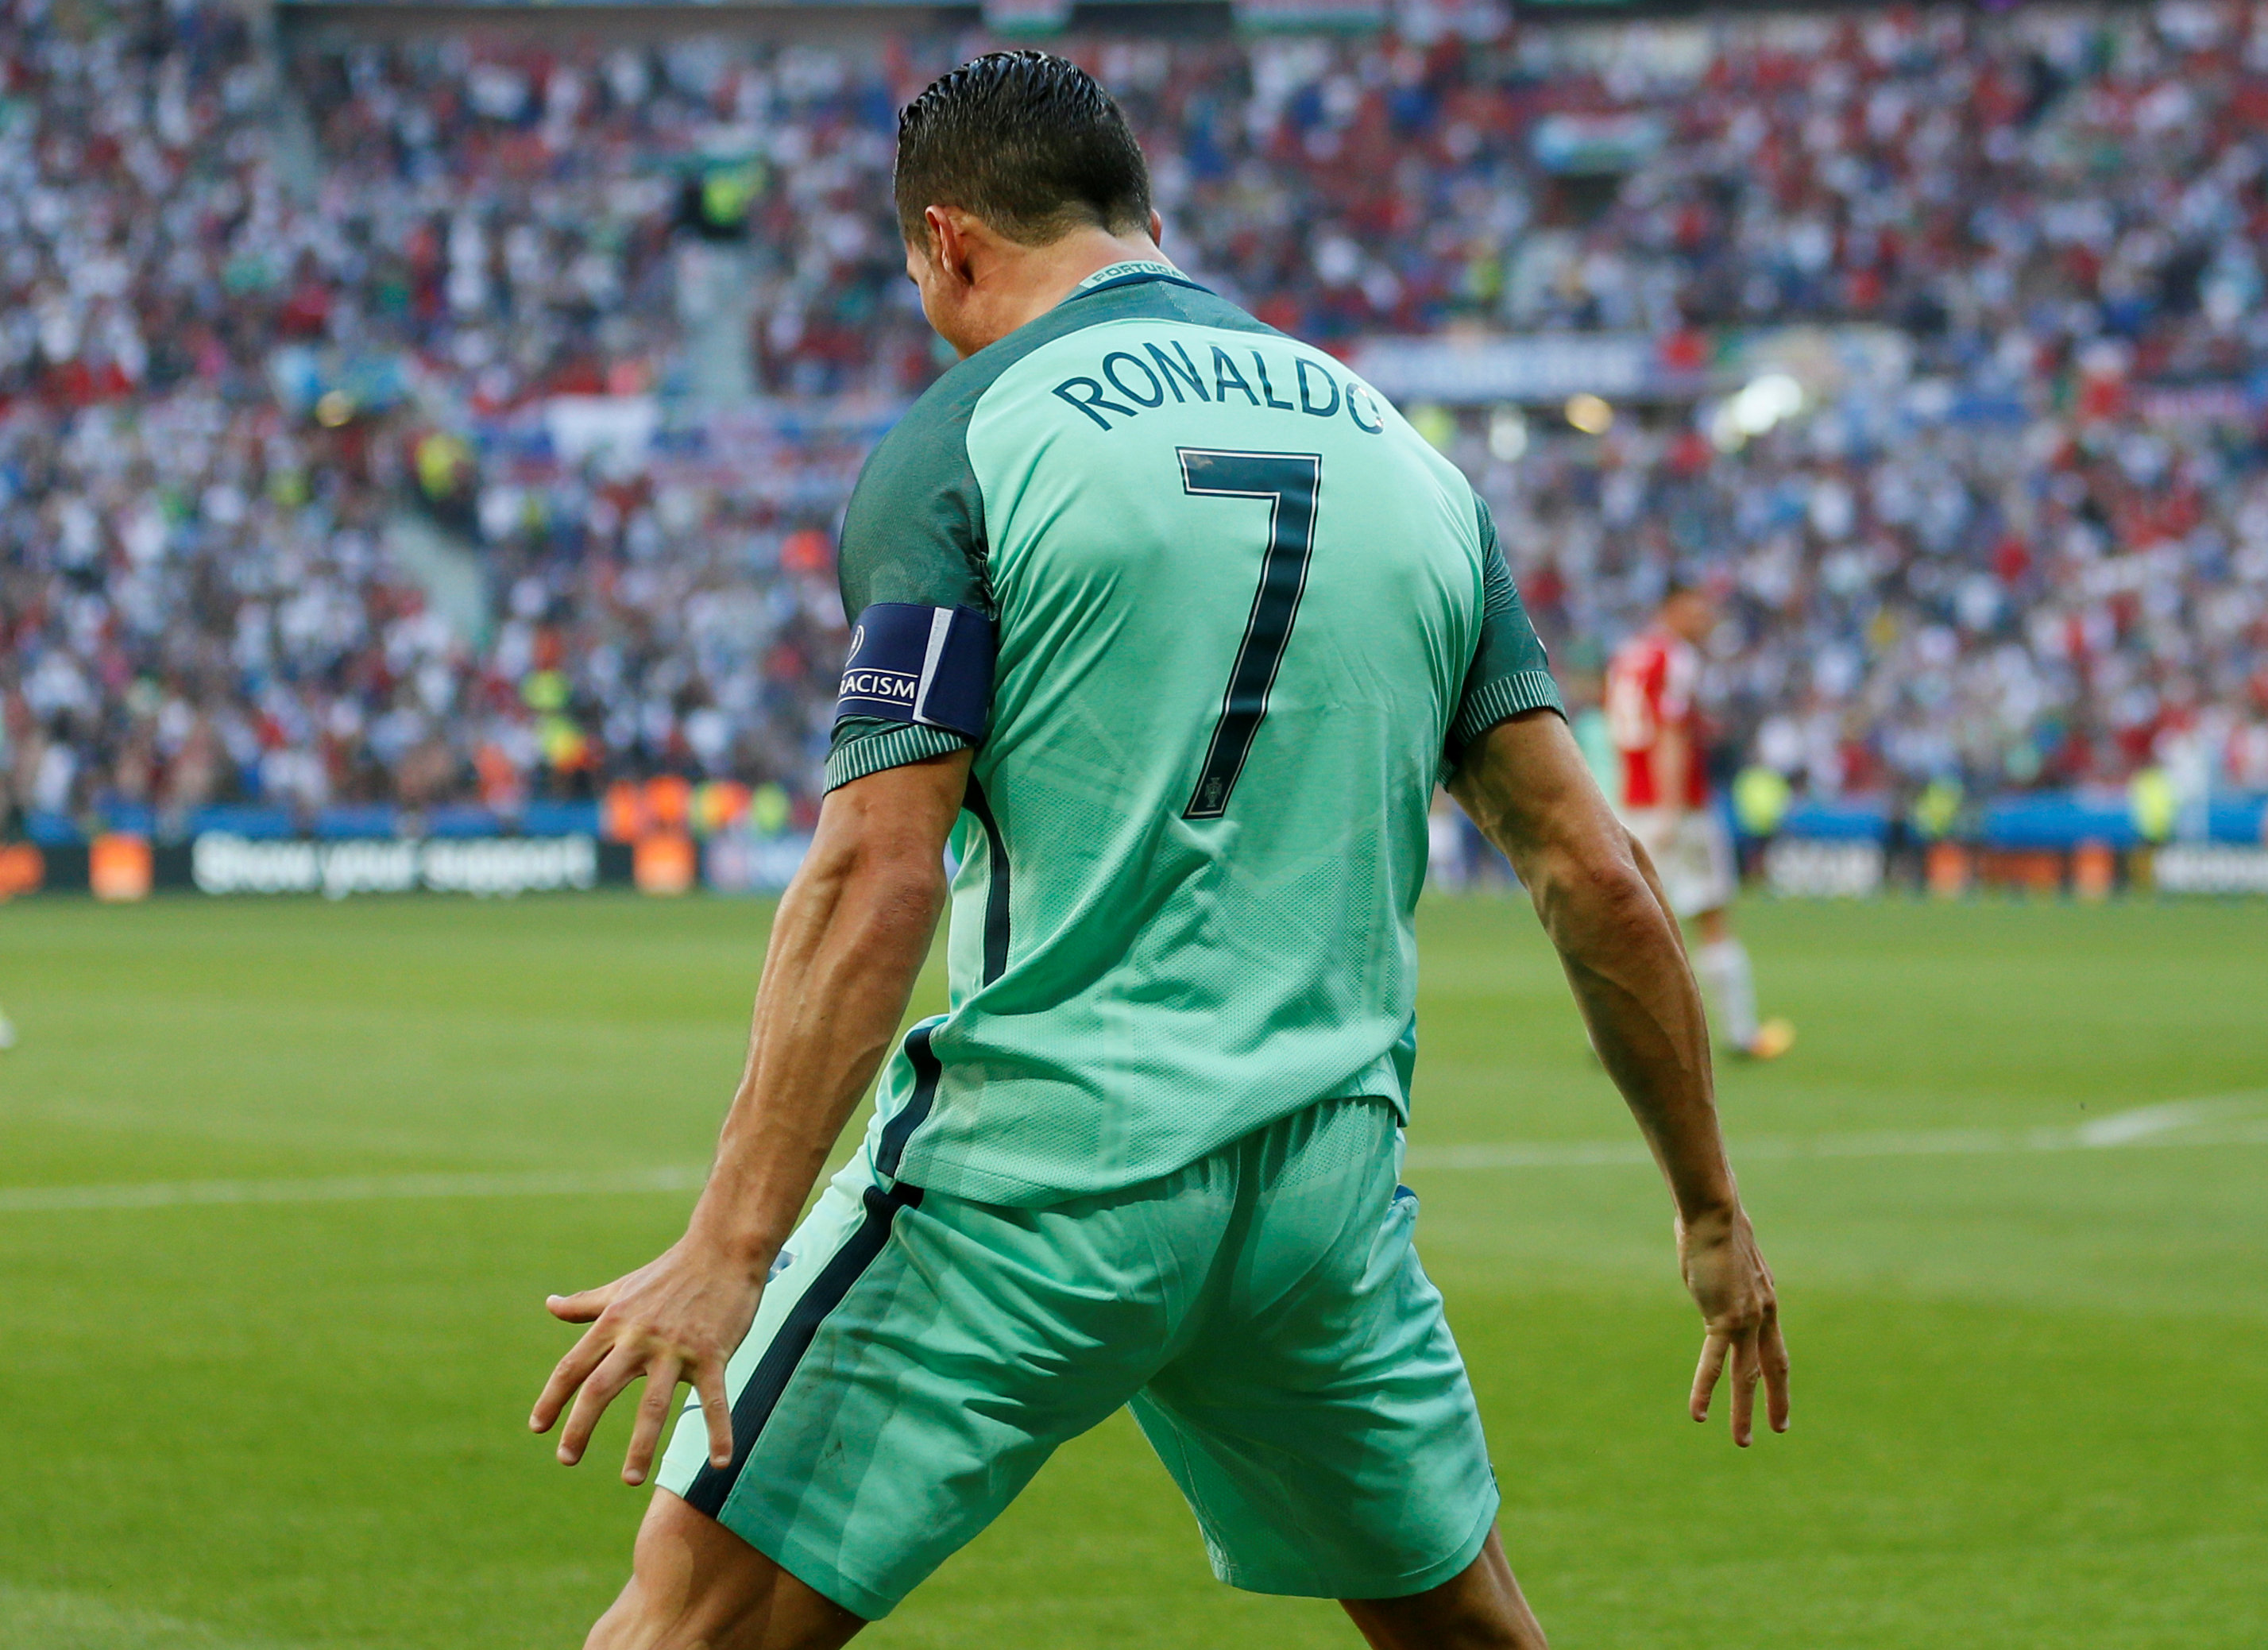 Football Soccer - Hungary v Portugal - EURO 2016 - Group F - Stade de Lyon, Lyon, France - 22/6/16Portugal's Cristiano Ronaldo celebrates after scoring their second goalREUTERS/Robert PrattaLivepic TPX IMAGES OF THE DAY